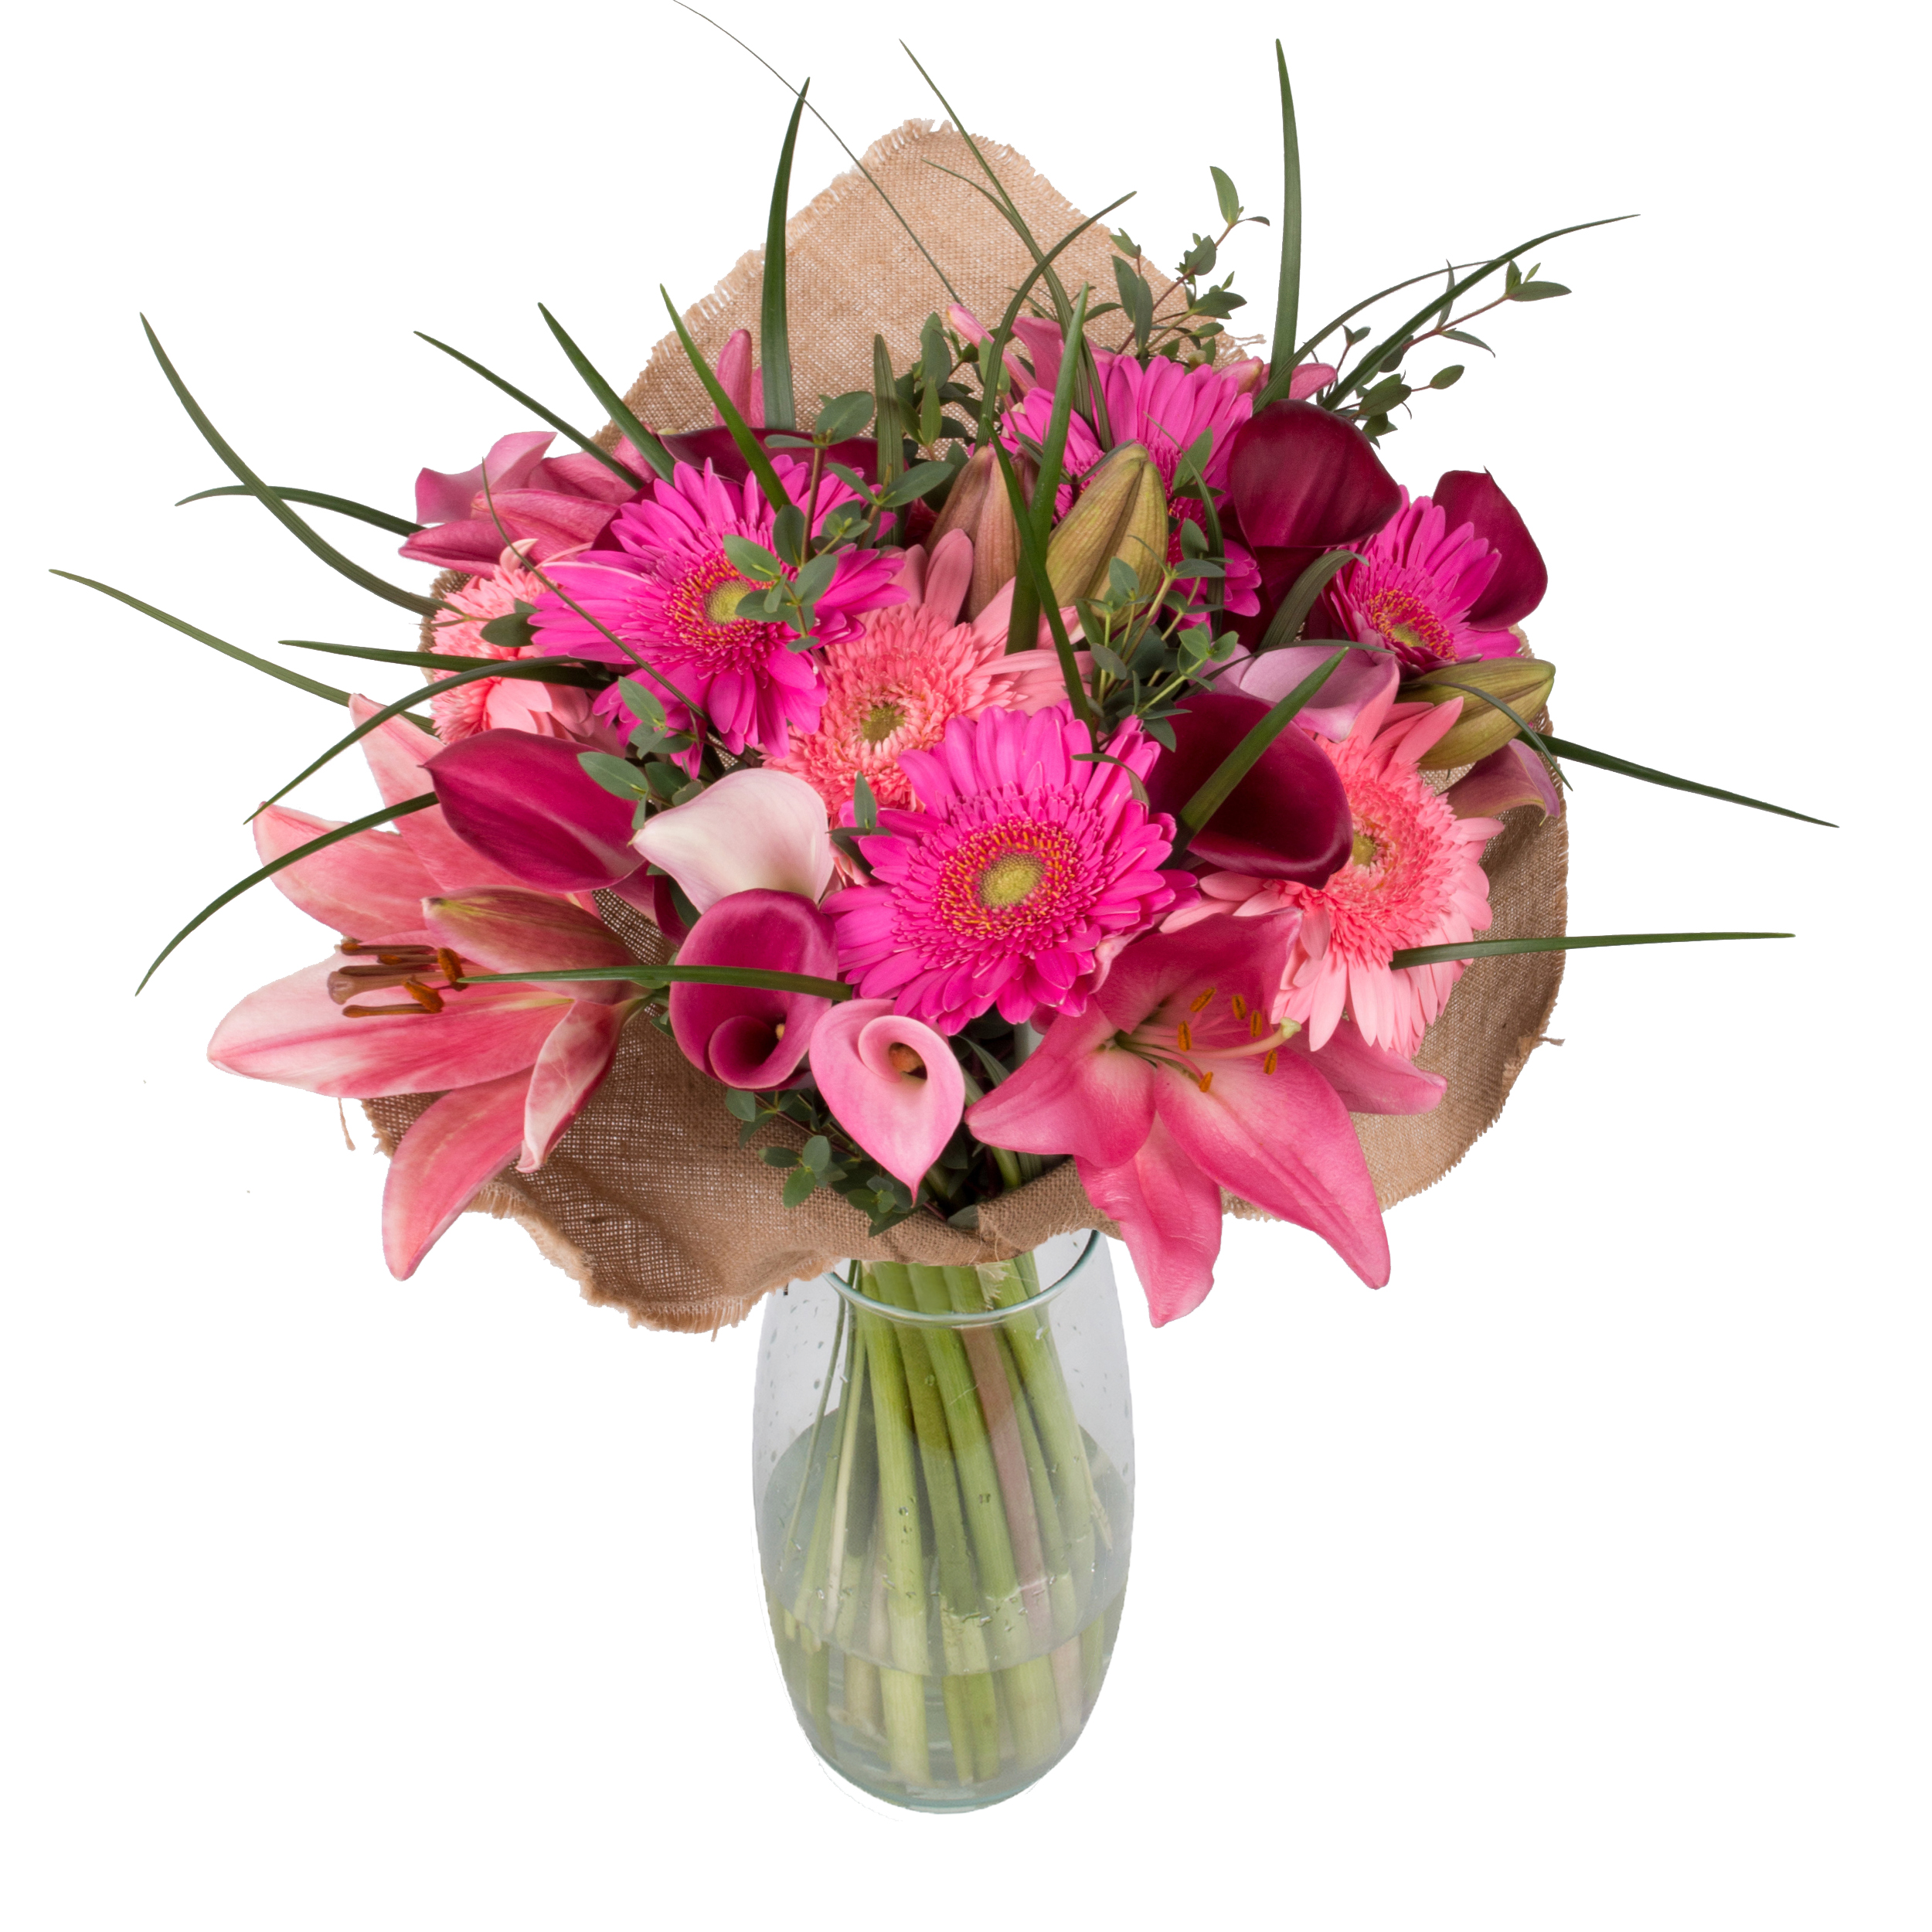 Pink Emma Bouquet with Burlap - 33 Stems